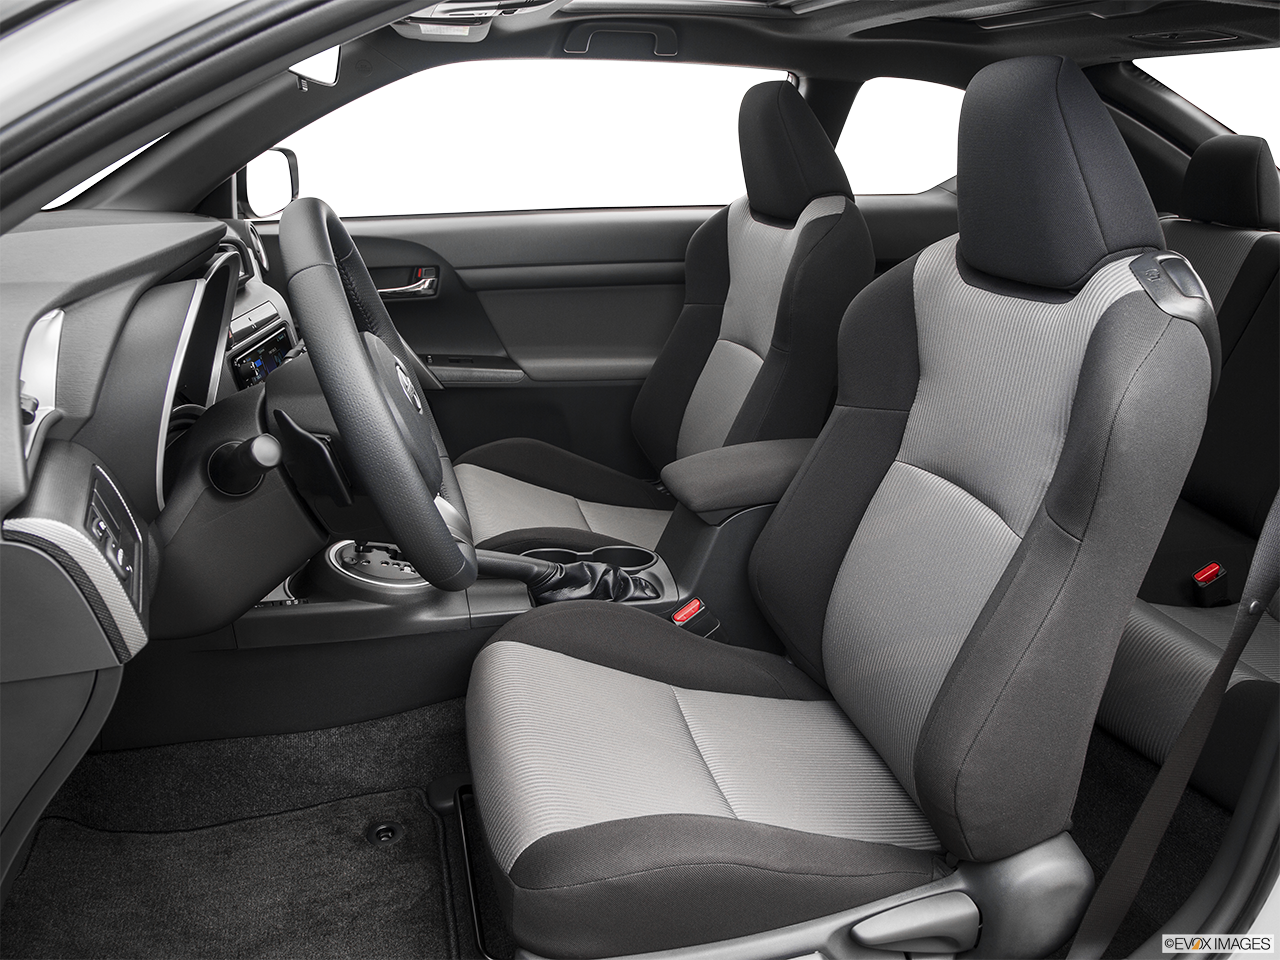 2016 Toyota Scion tC At Roseville Toyota